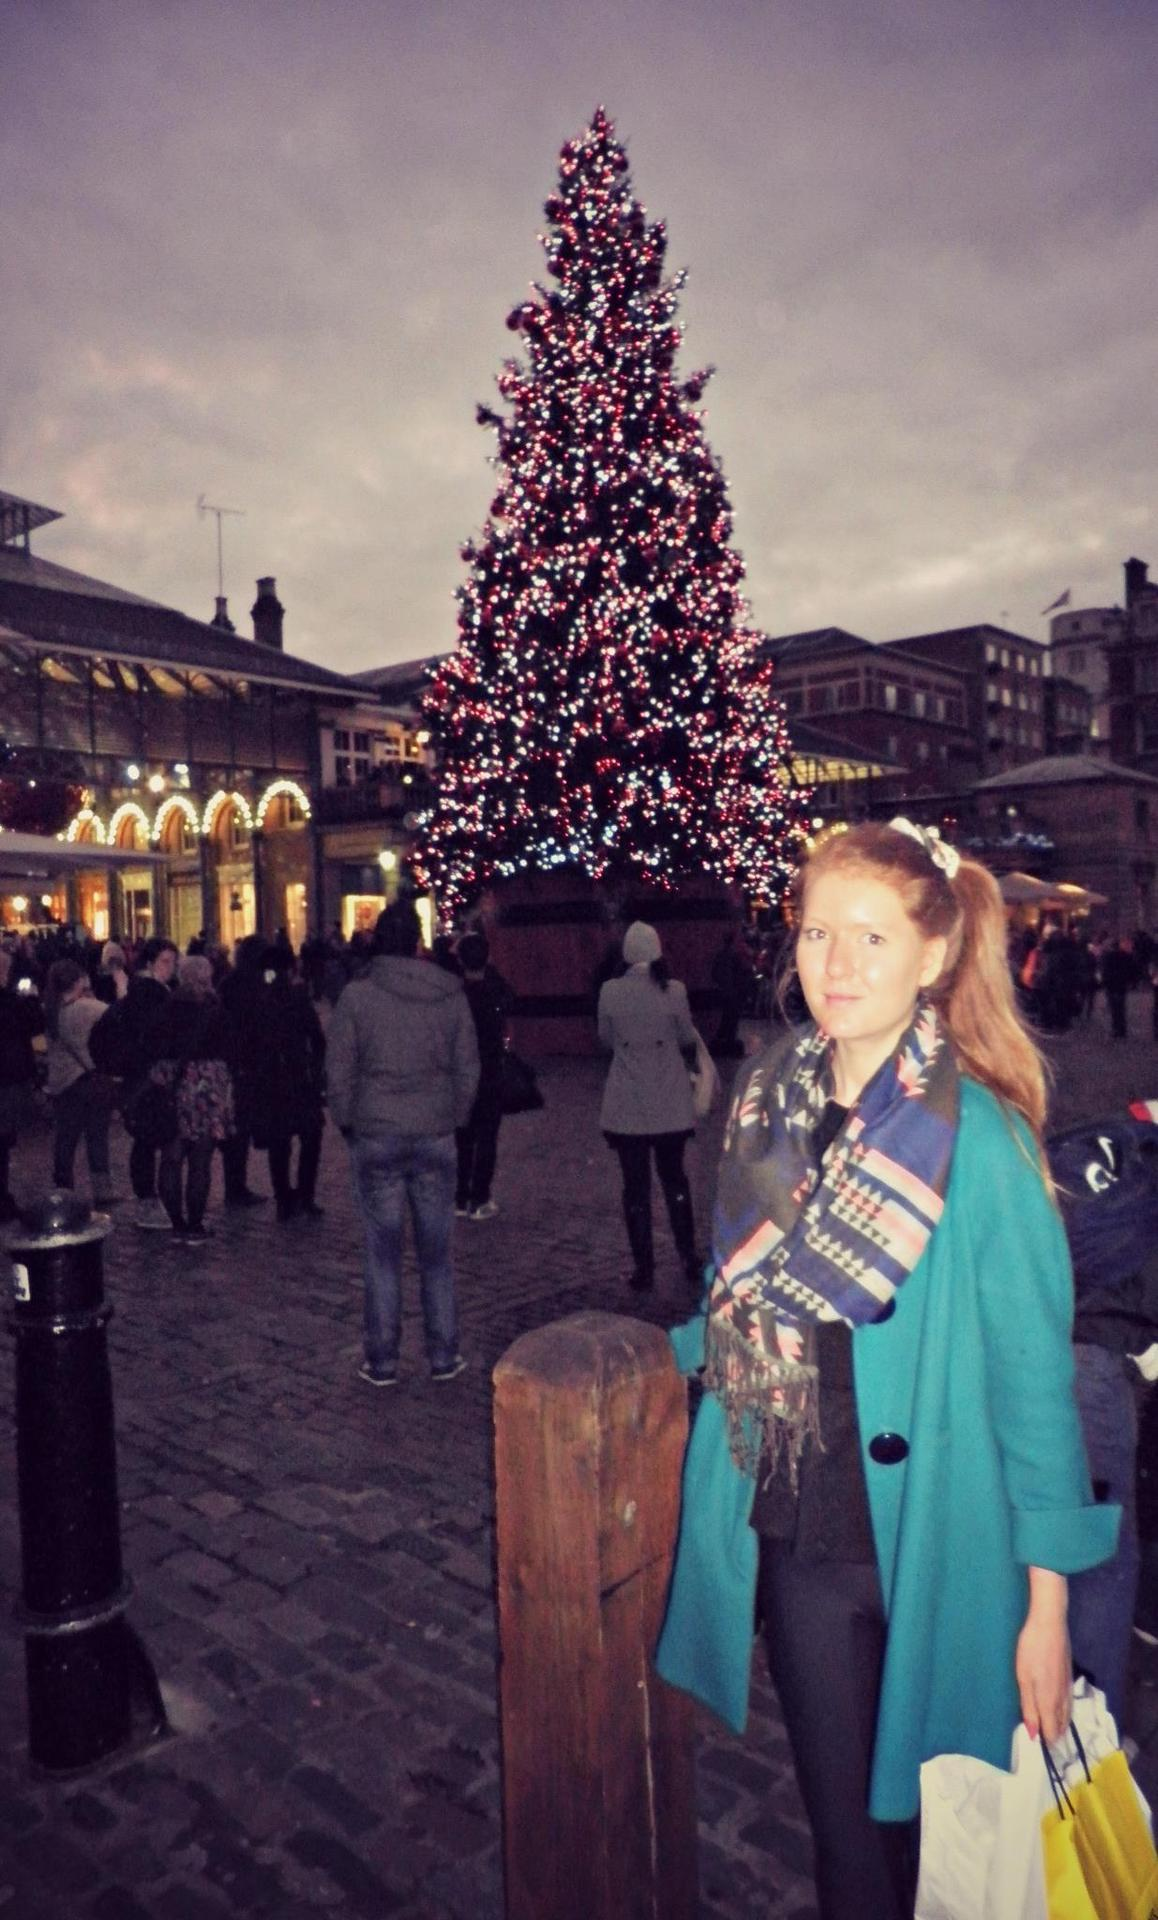 Loving Life in Convent Garden. Can it be Christmas now please and thank you.